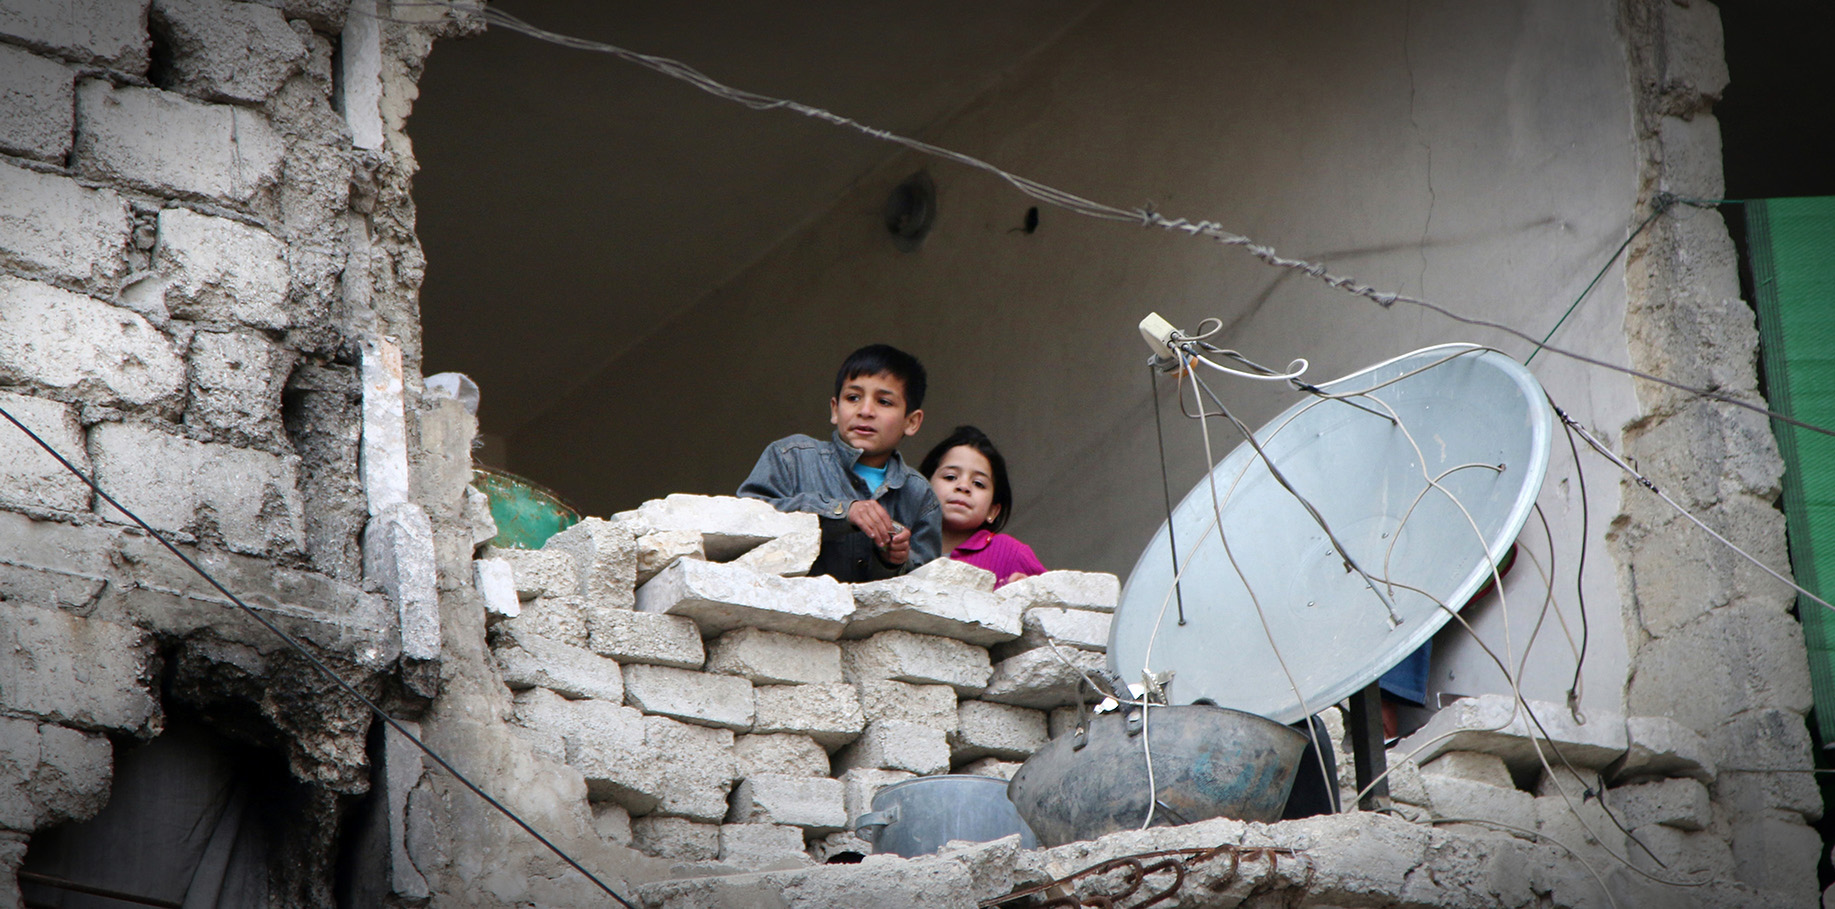 ap foto : alexander kots : file - in this feb. 11, 2016, file photo, children peer from a partially destroyed home in aleppo, syria. after four years of grinding battles, aleppo's divided residents face a common fear as the prospect of a total siege looms. with rebels and government forces each promising to unite the divided city, aleppo is once again a main battlefield in syria's devastating civil war. (alexander kots/komsomolskaya pravda via ap, file) a feb. 11, 2016 file photo ap explains syria alepp automatarkiverad